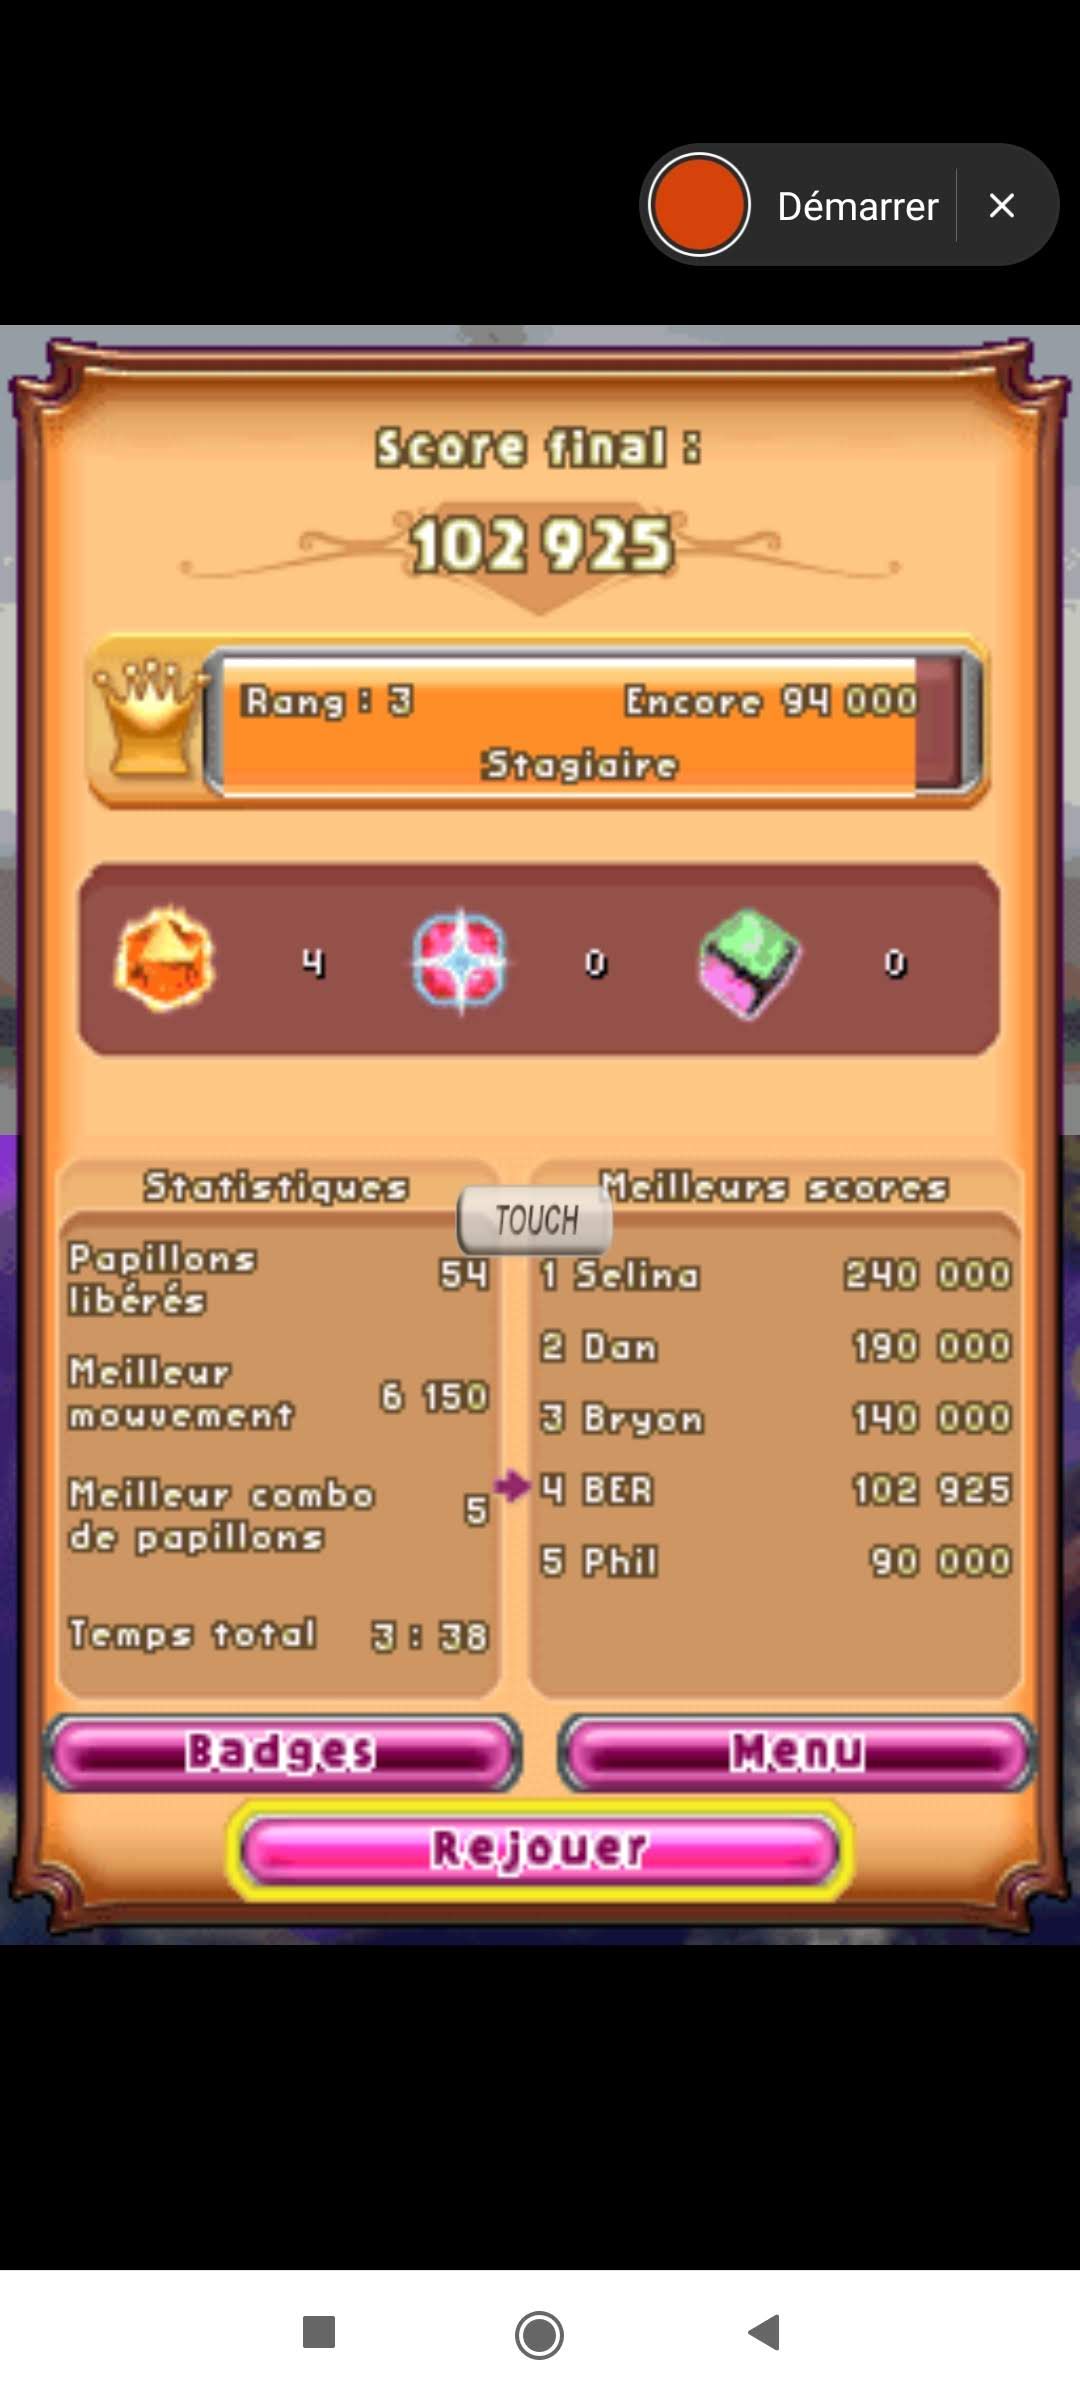 Larquey: Bejeweled 3: Butterflies [Butterflies Freed] (Nintendo DS Emulated) 54 points on 2020-09-27 04:22:23